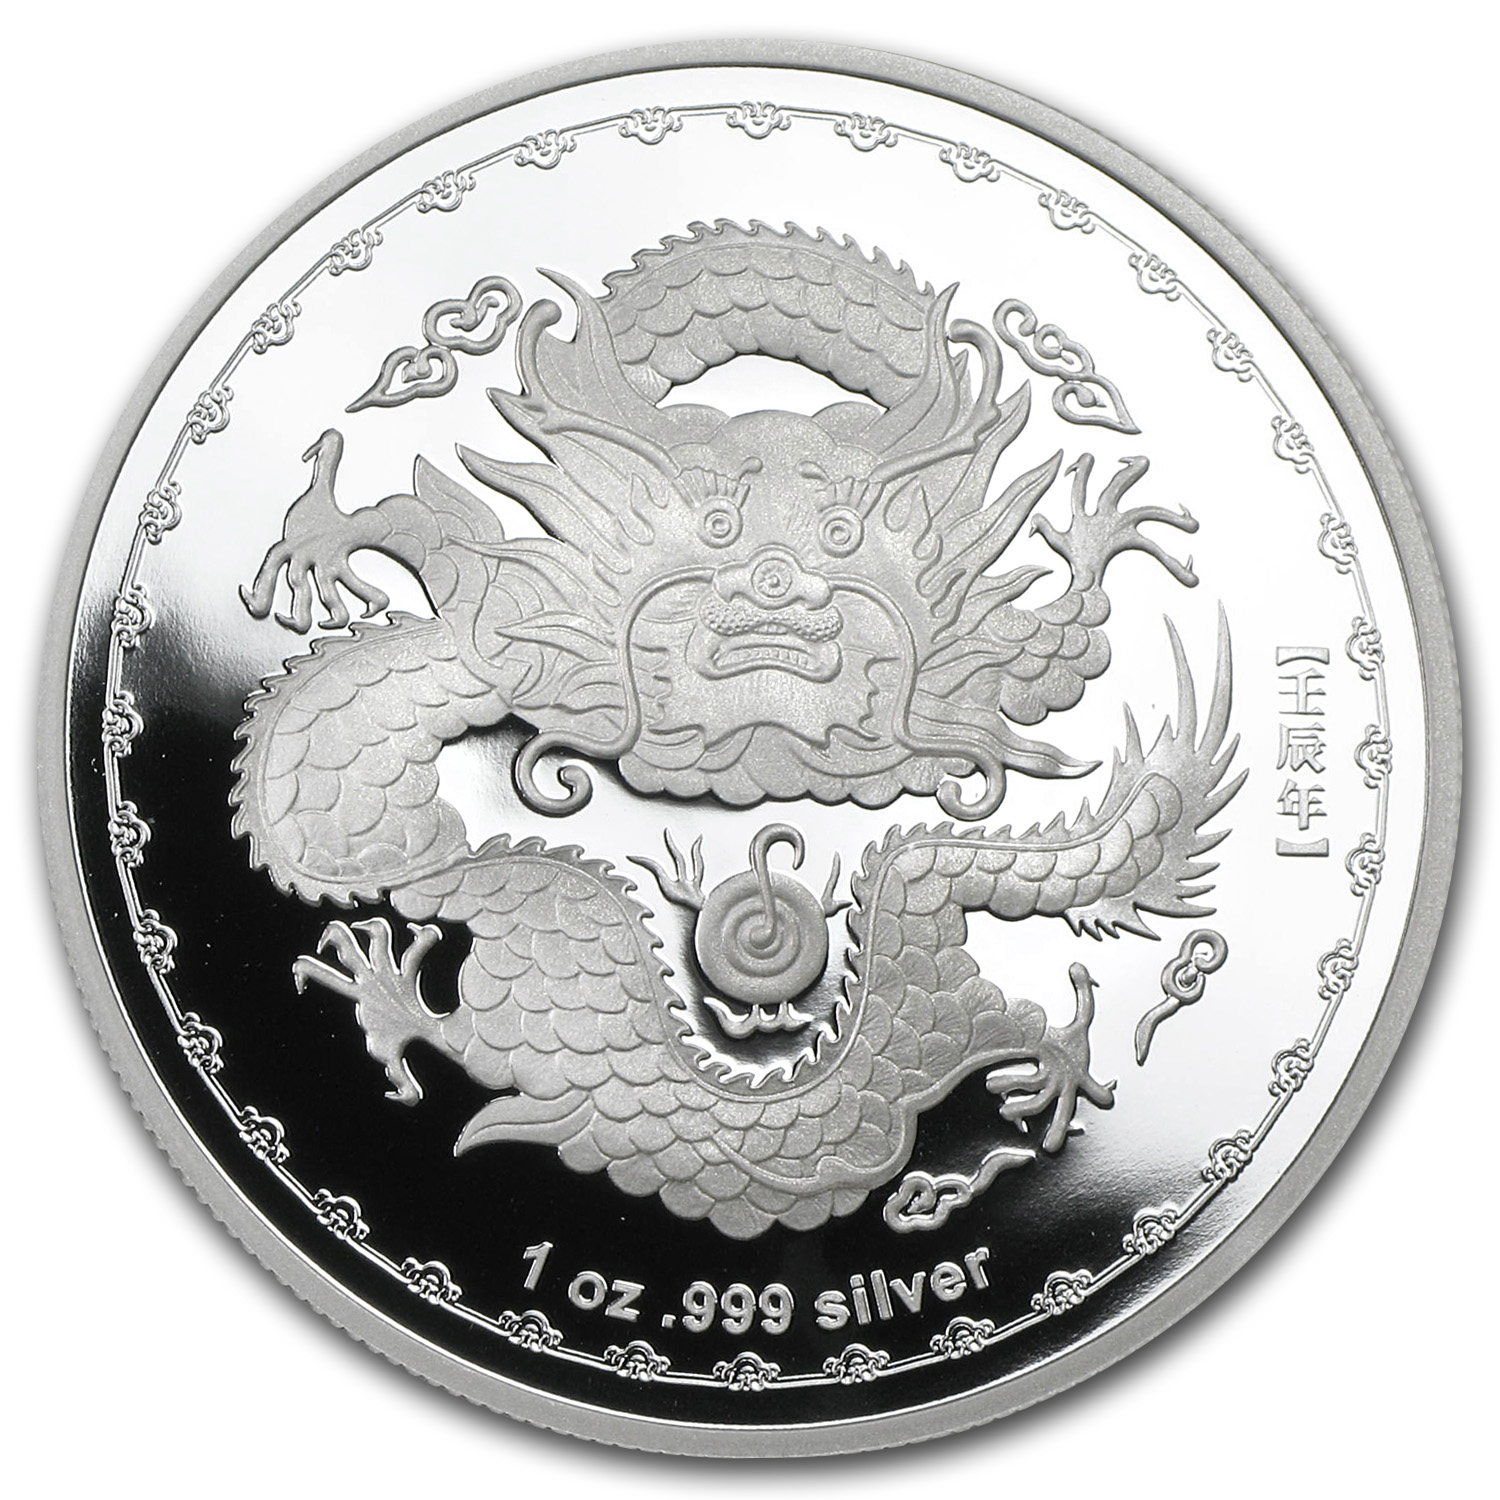 2012 Australia 1 oz Silver Year of the Dragon